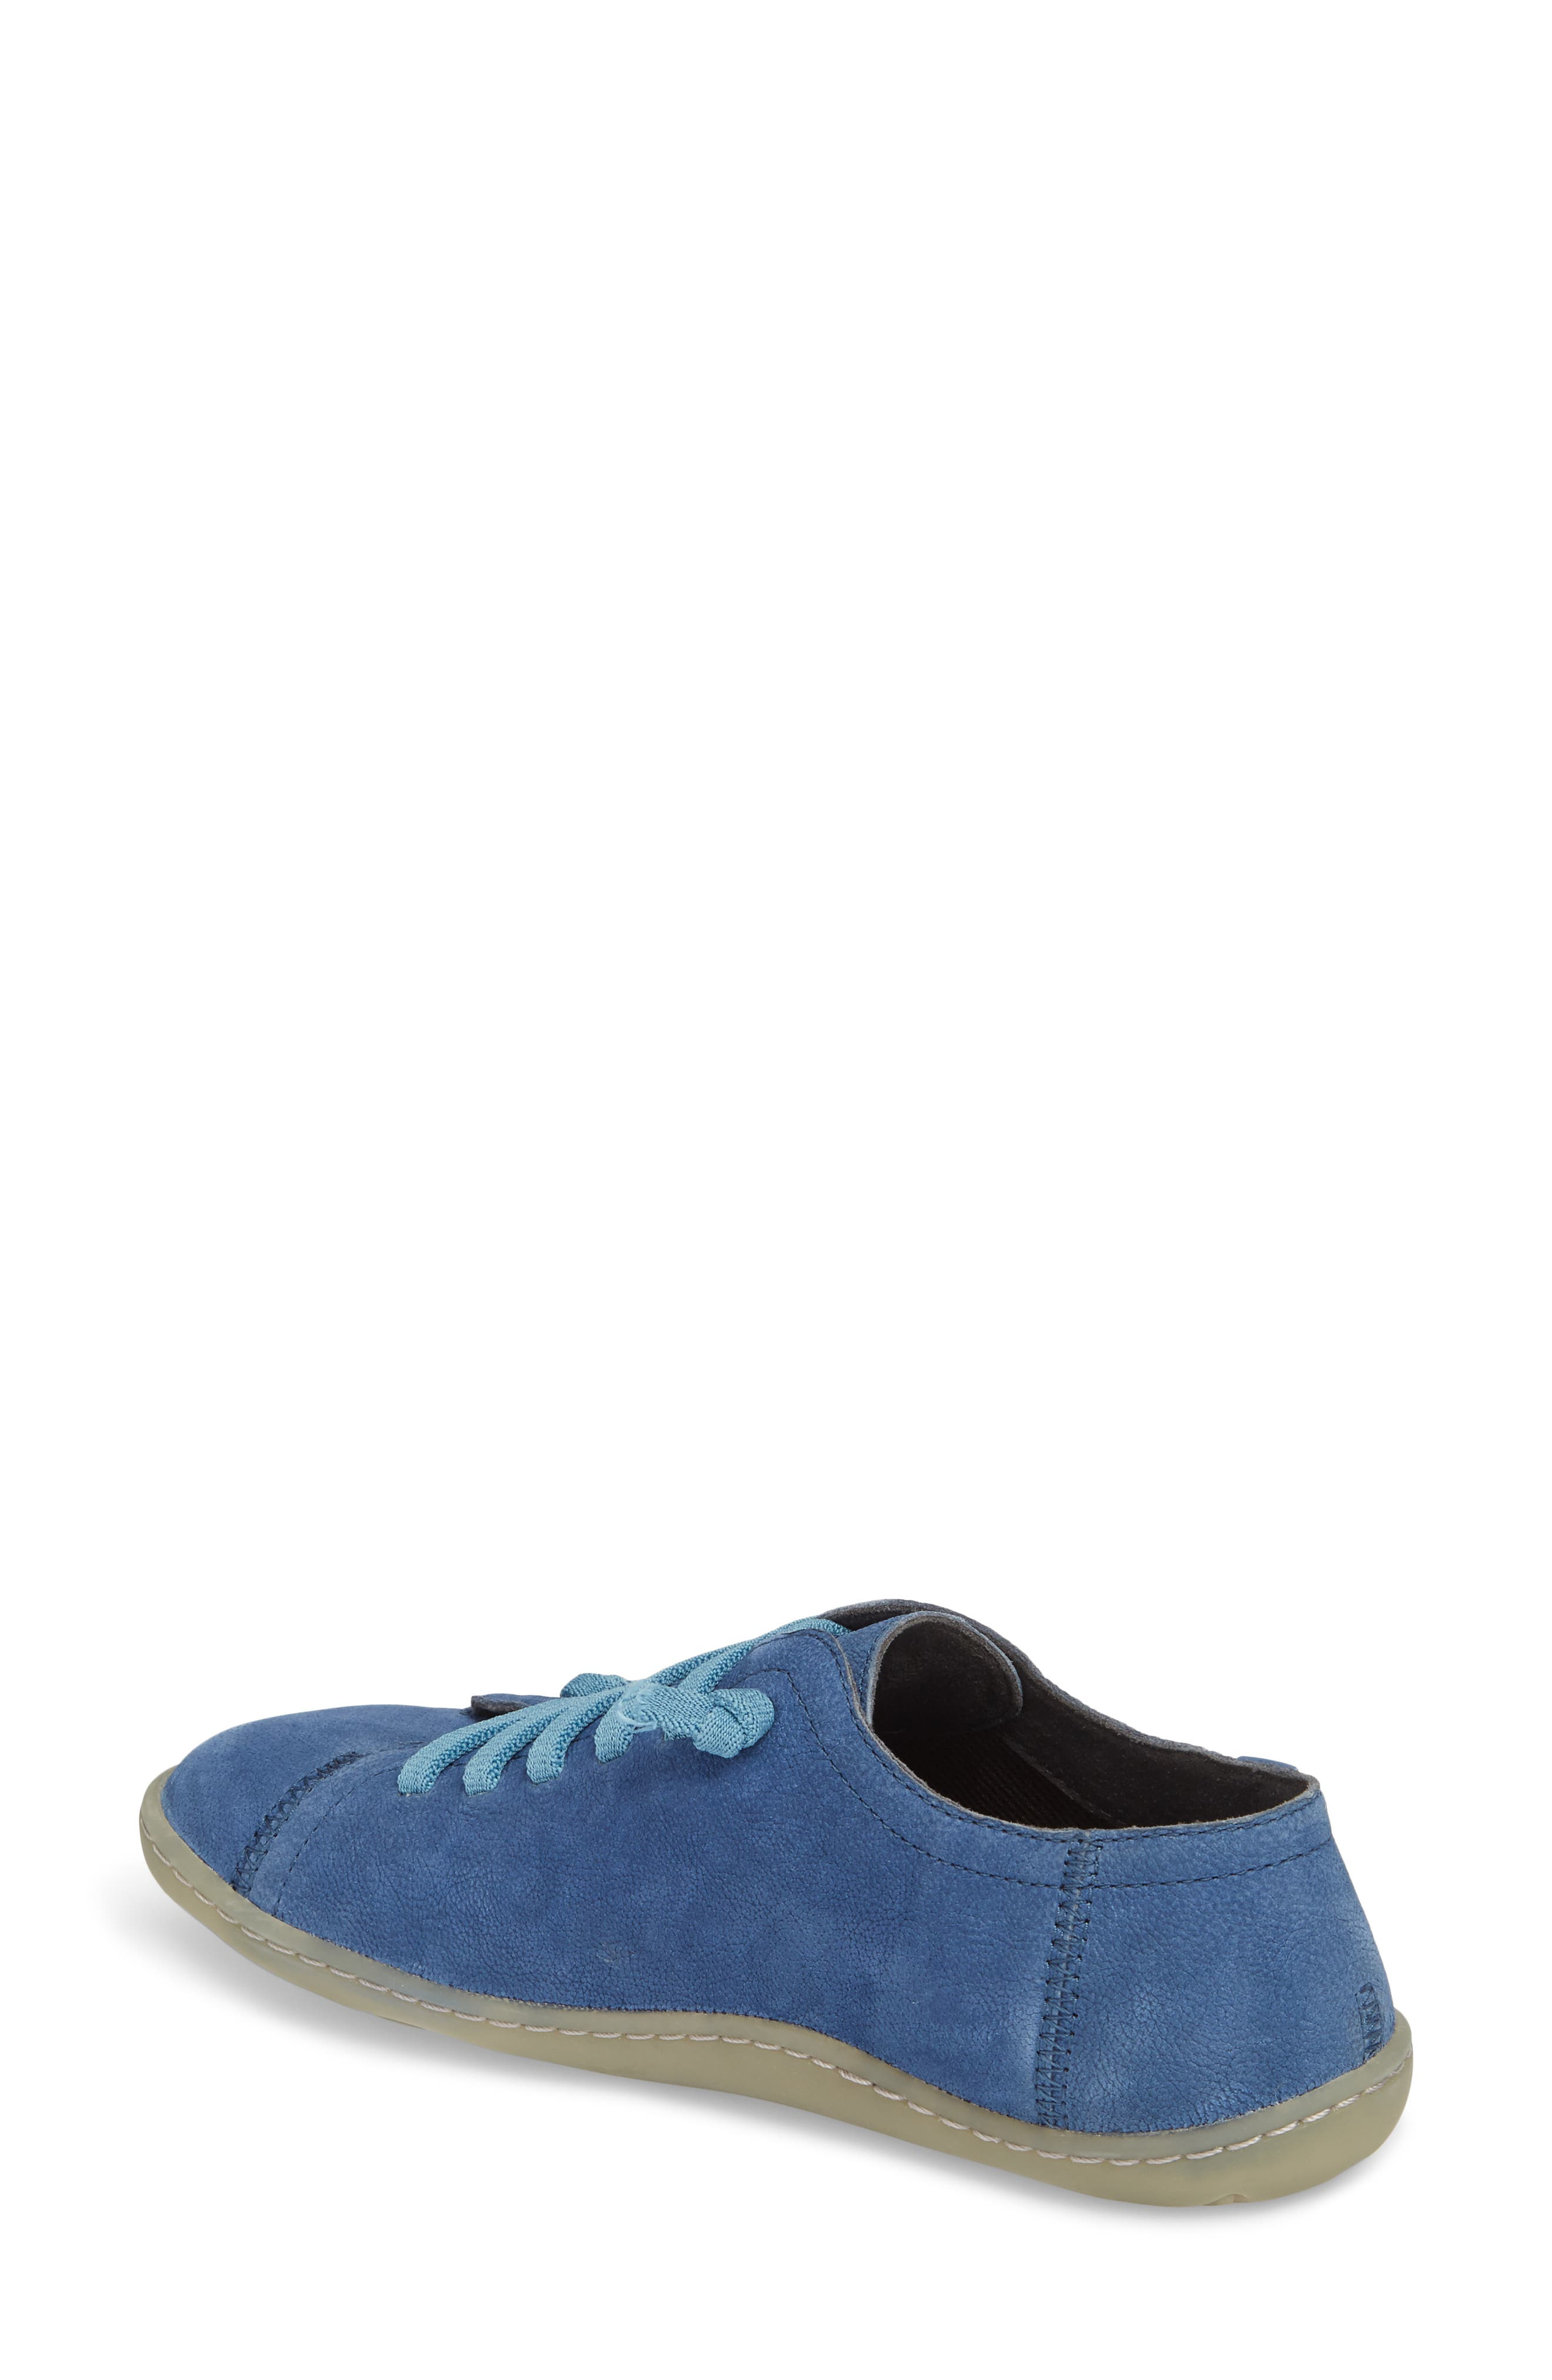 'Peu Cami' Leather Sneaker,                             Alternate thumbnail 2, color,                             Medium Blue Suede